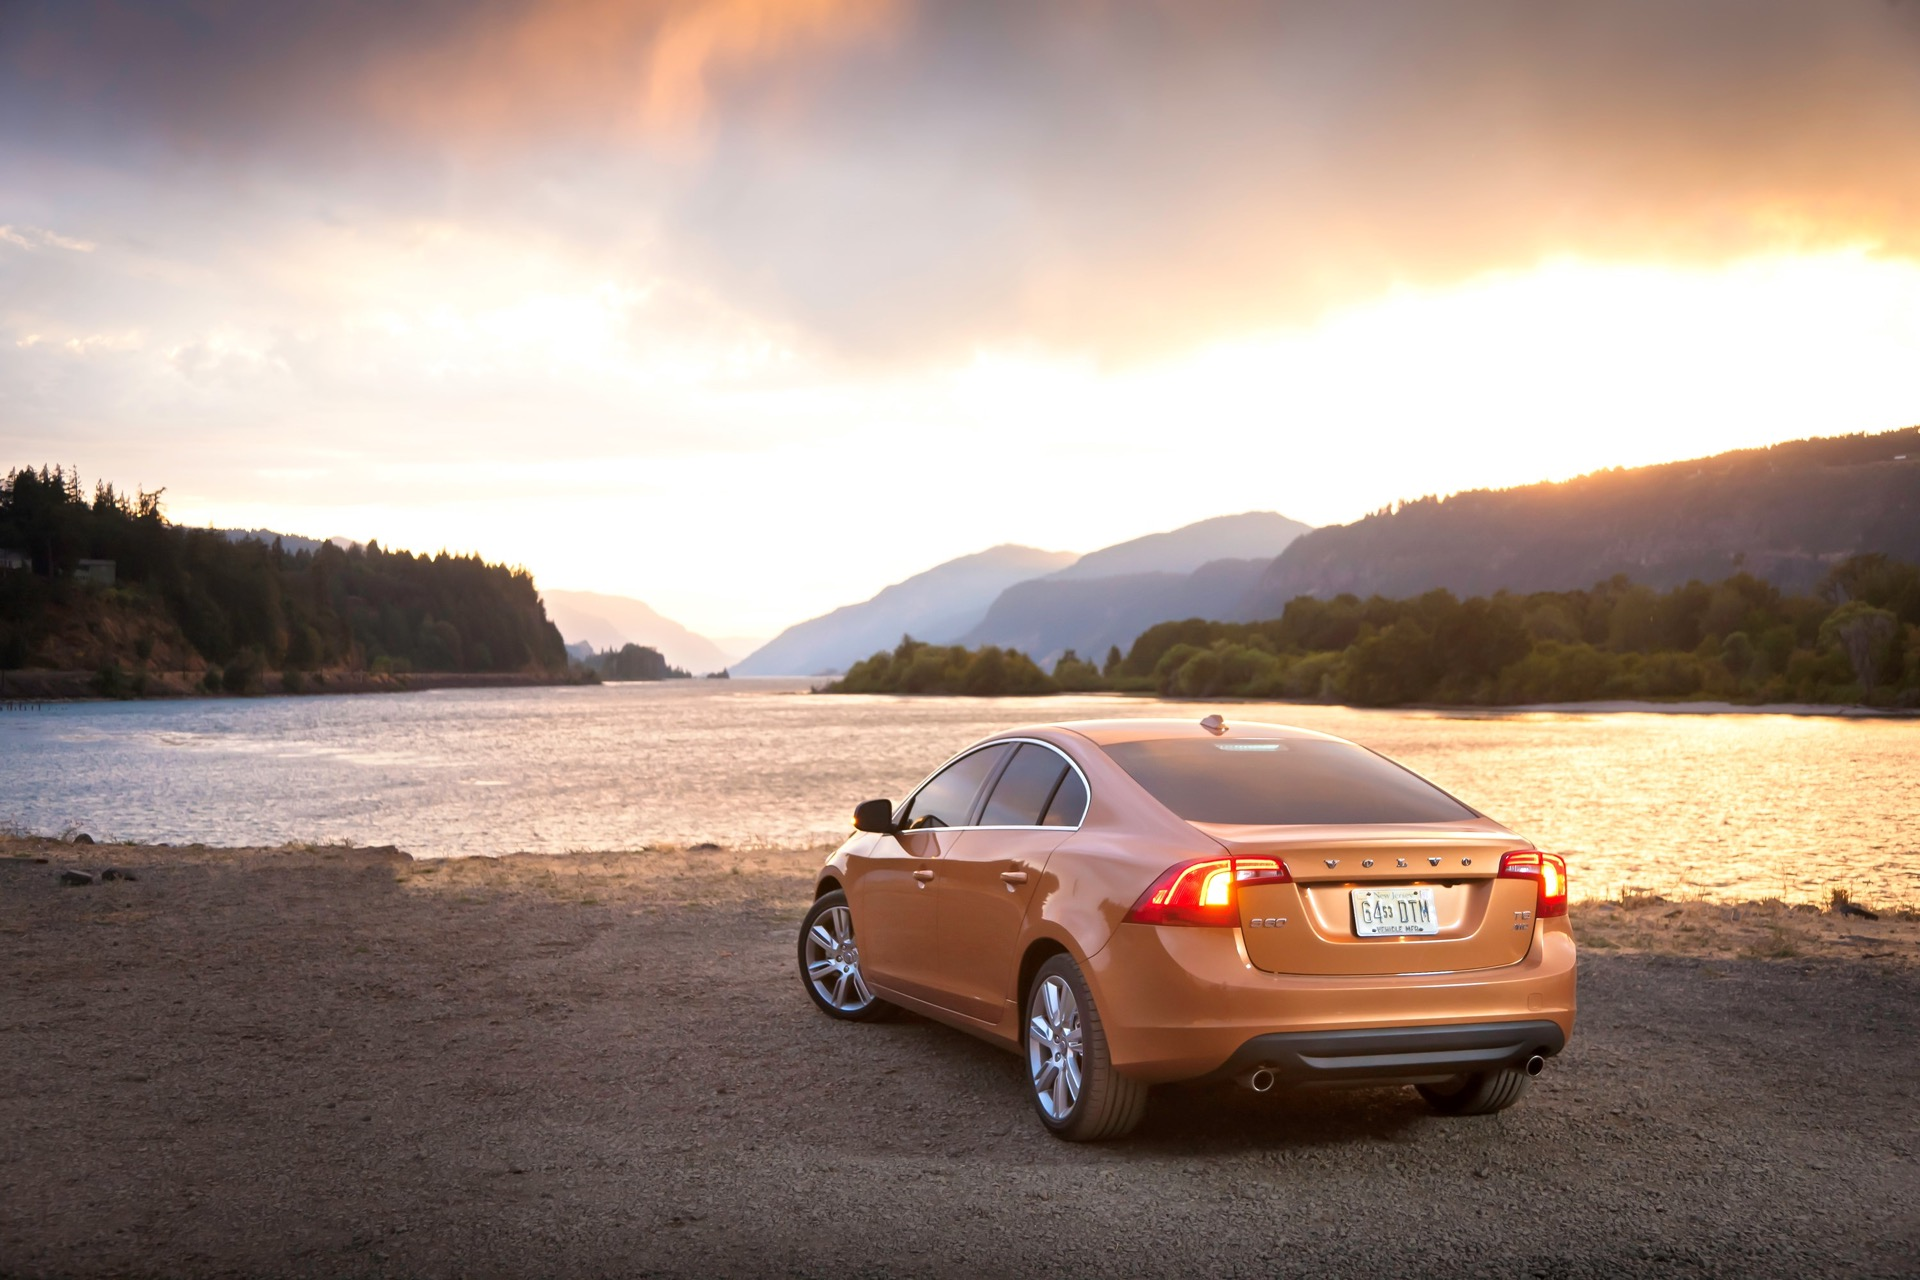 S60 T6 Awd Static Beauty12 -  Volvo